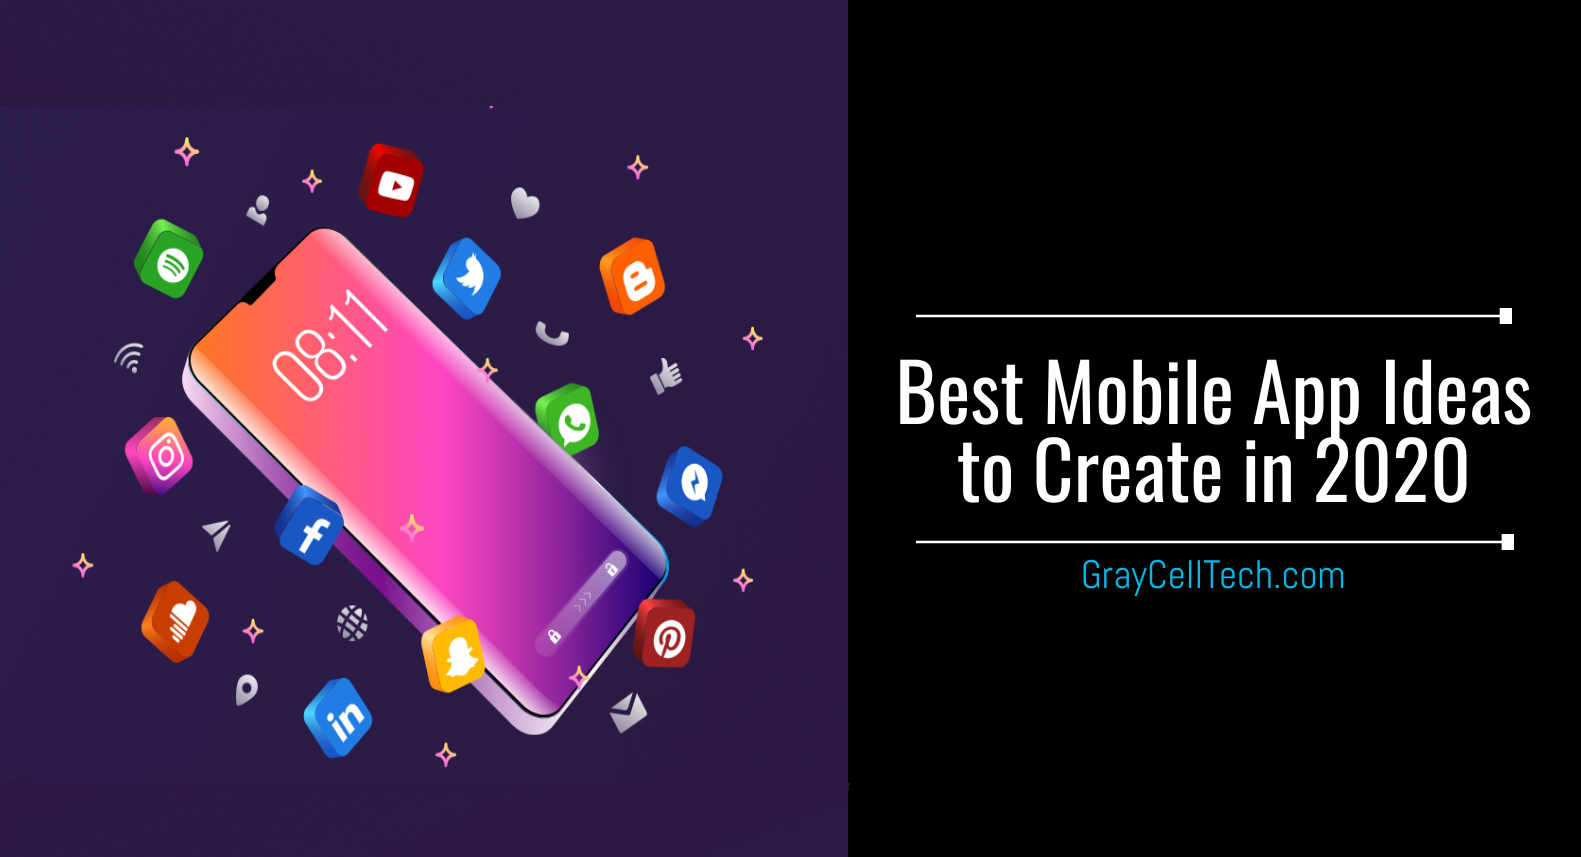 Best Mobile App Ideas to Create in 2020